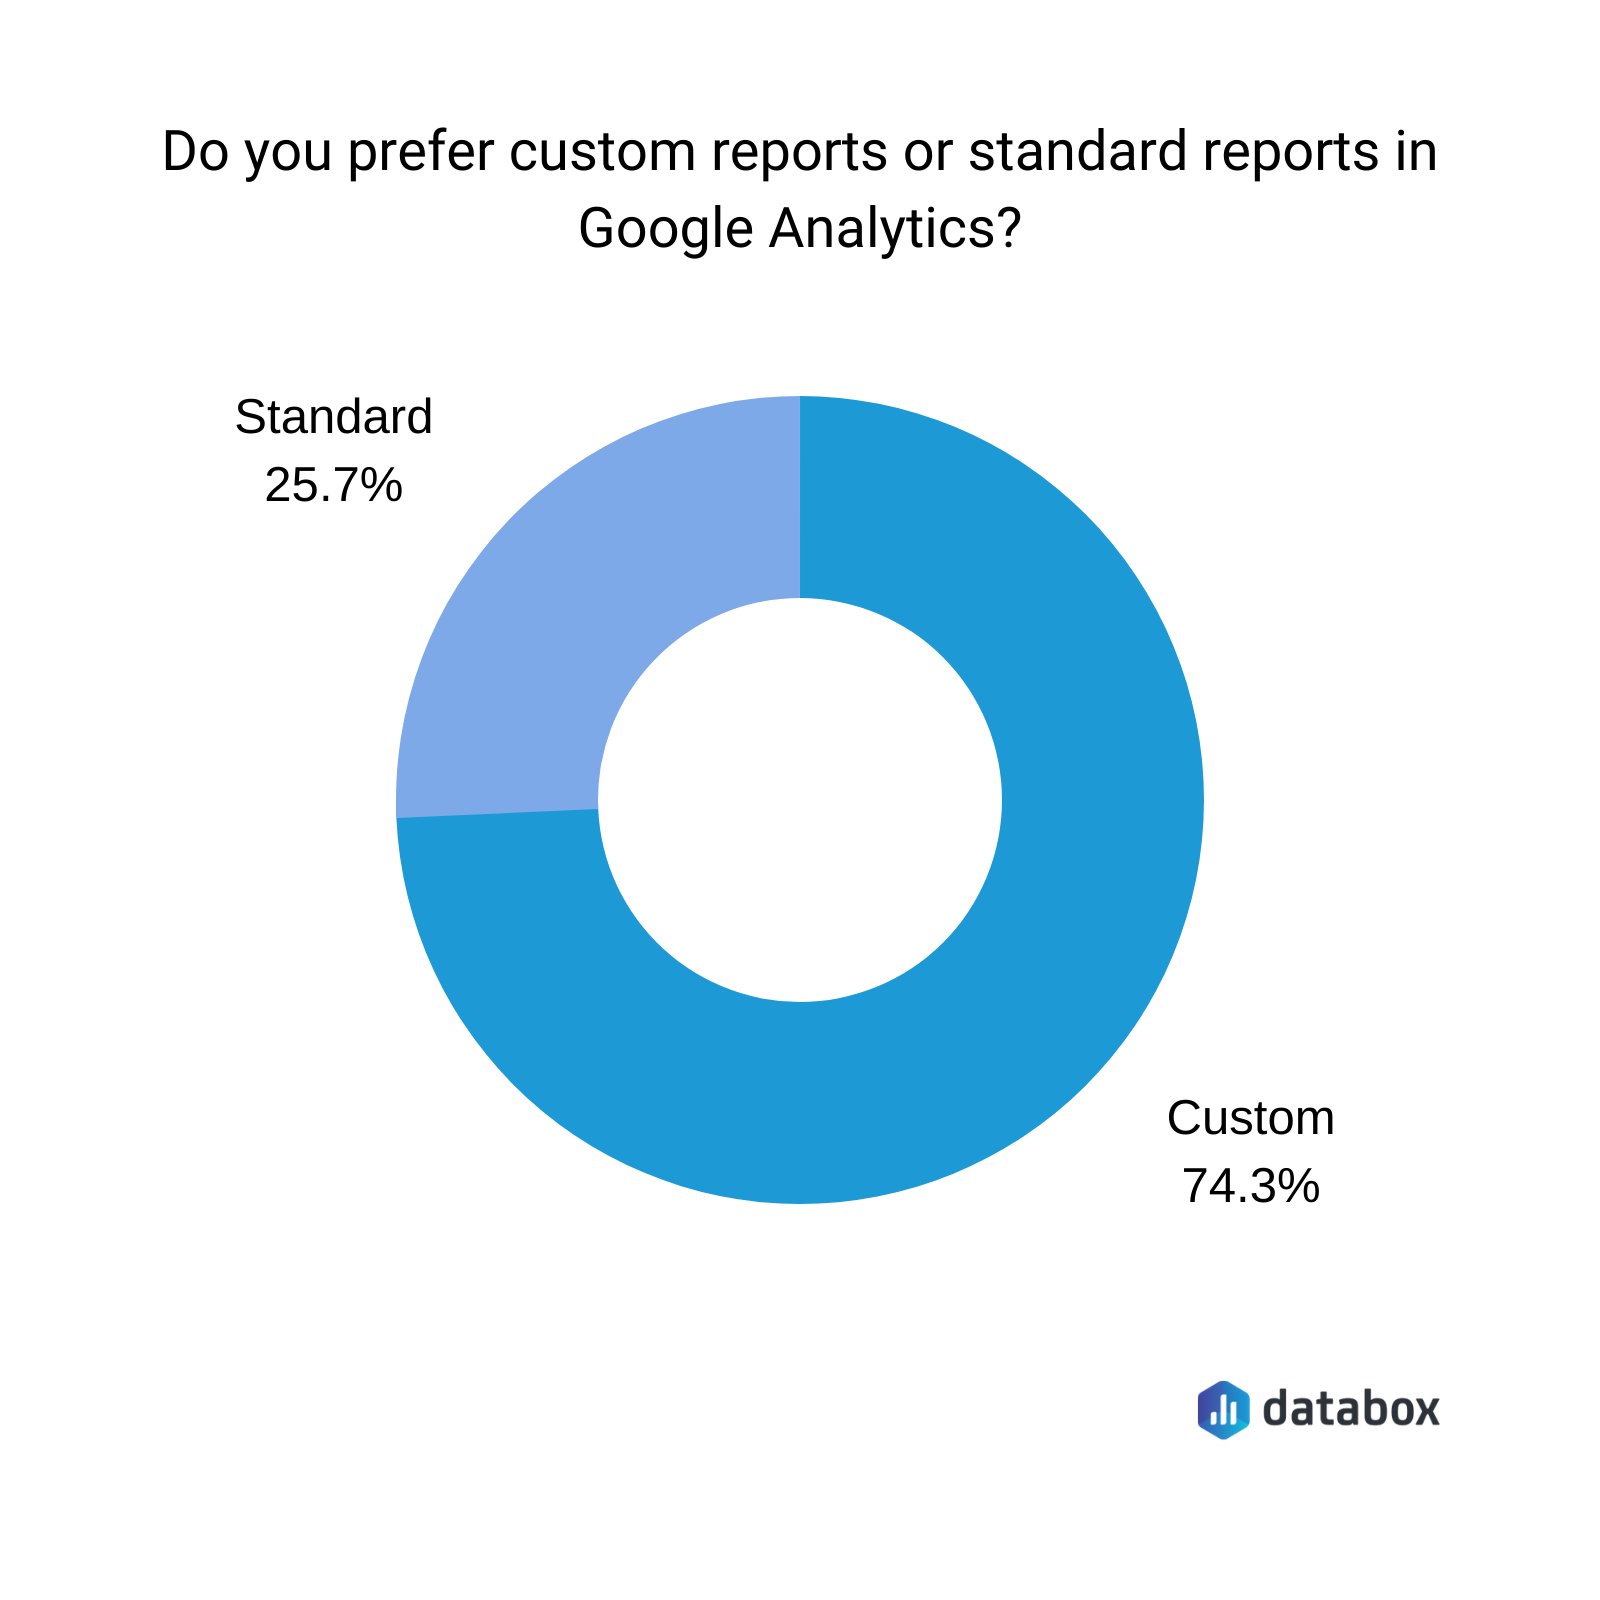 do your prefer custom reports or standard reports in Google analytics?